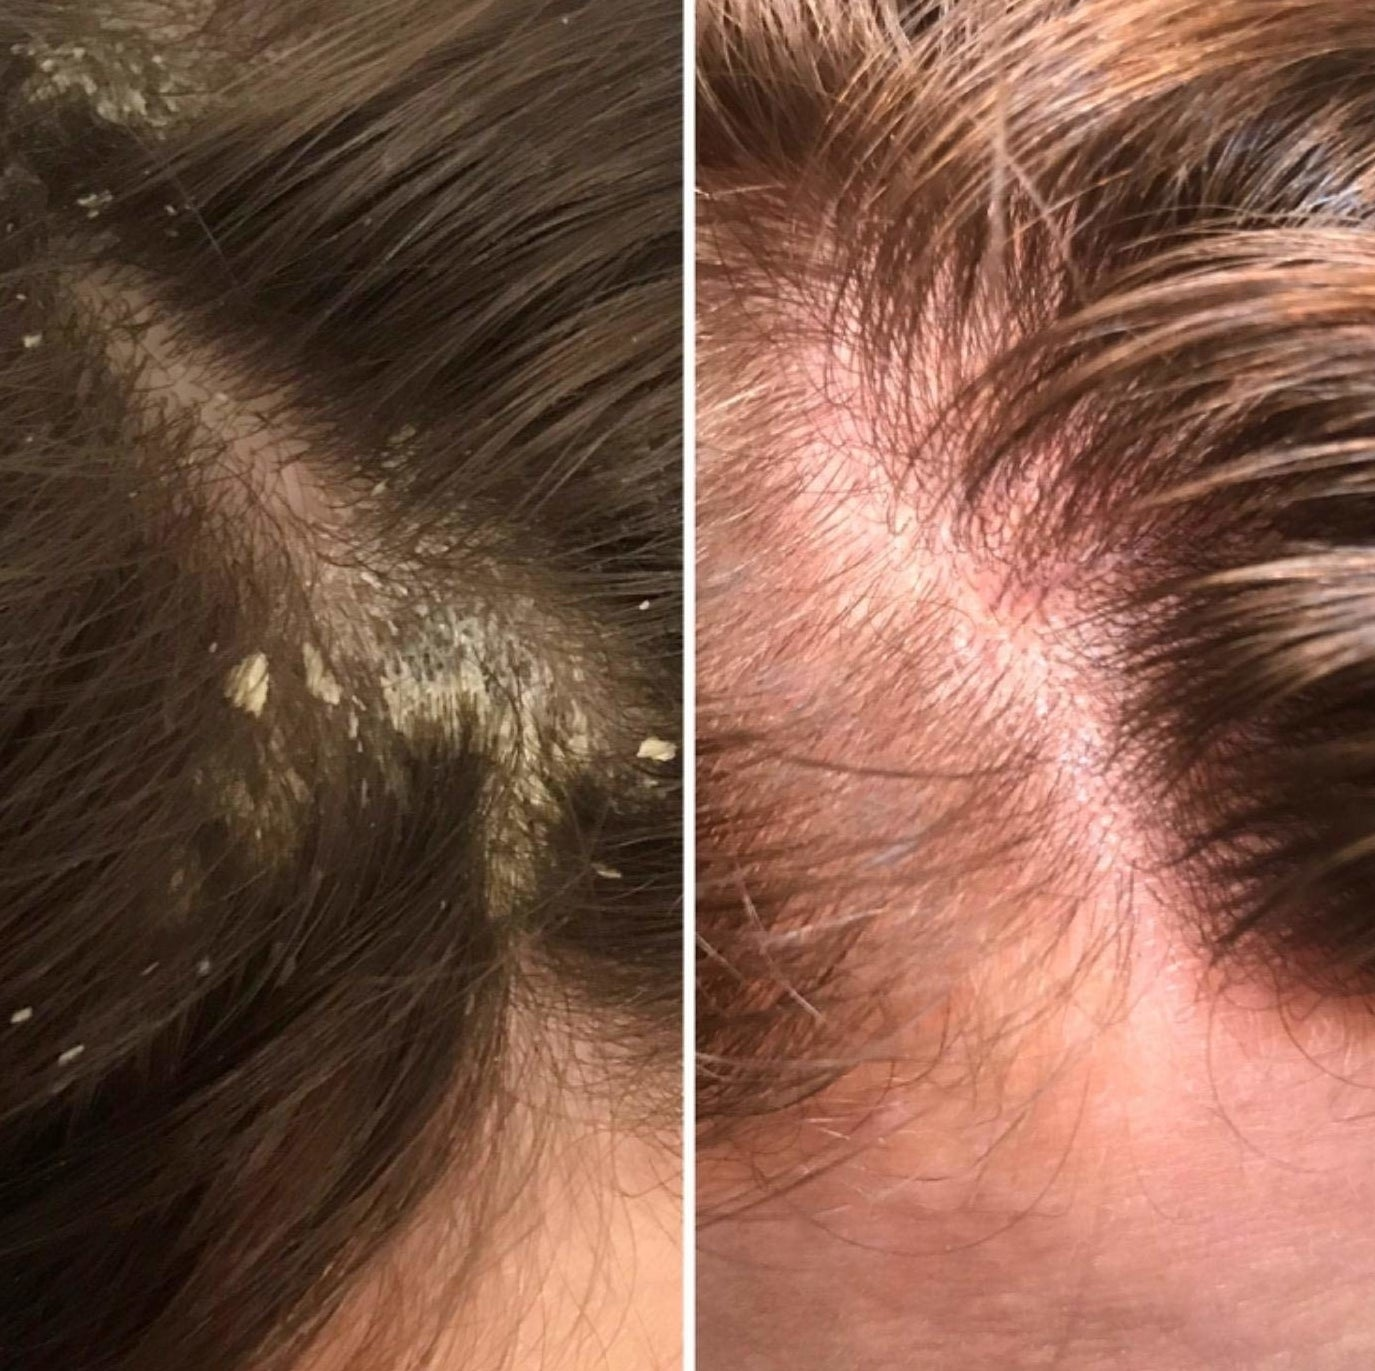 Reviewer photo showing before and after results of using ant-dandruff shampoo